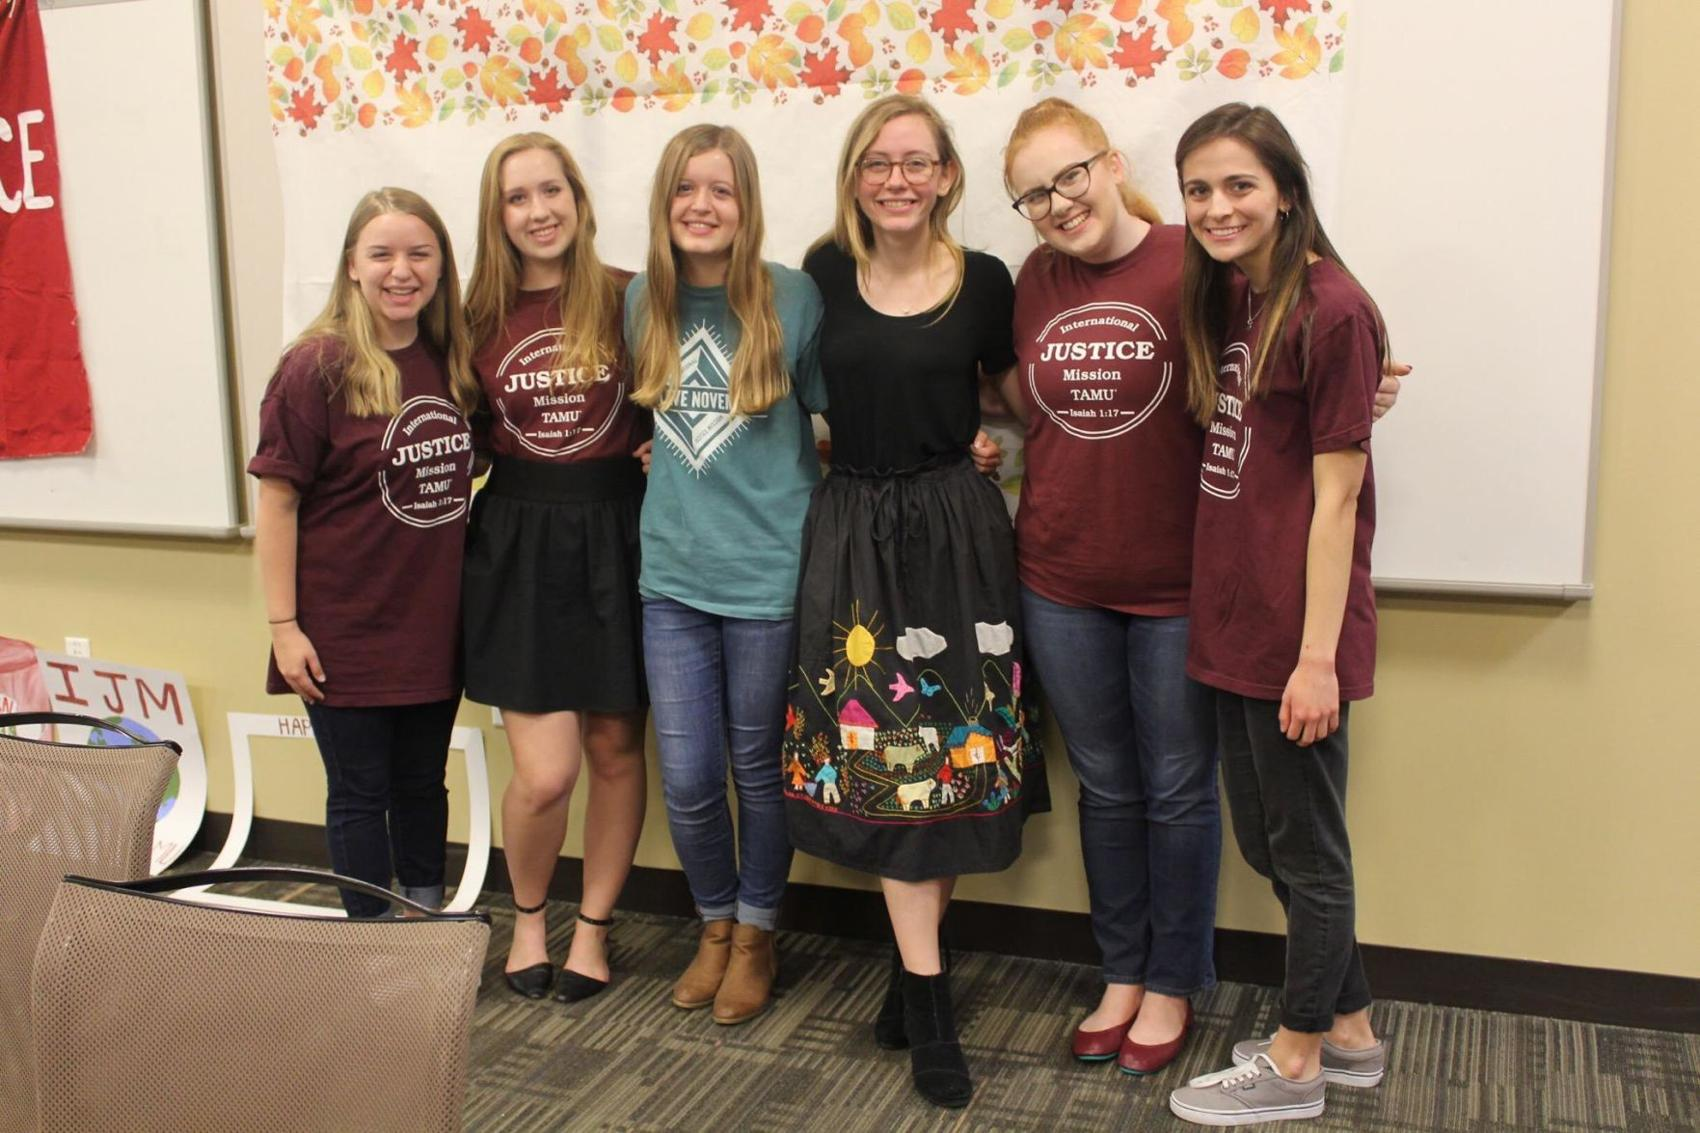 Students combat human trafficking through International Justice Mission